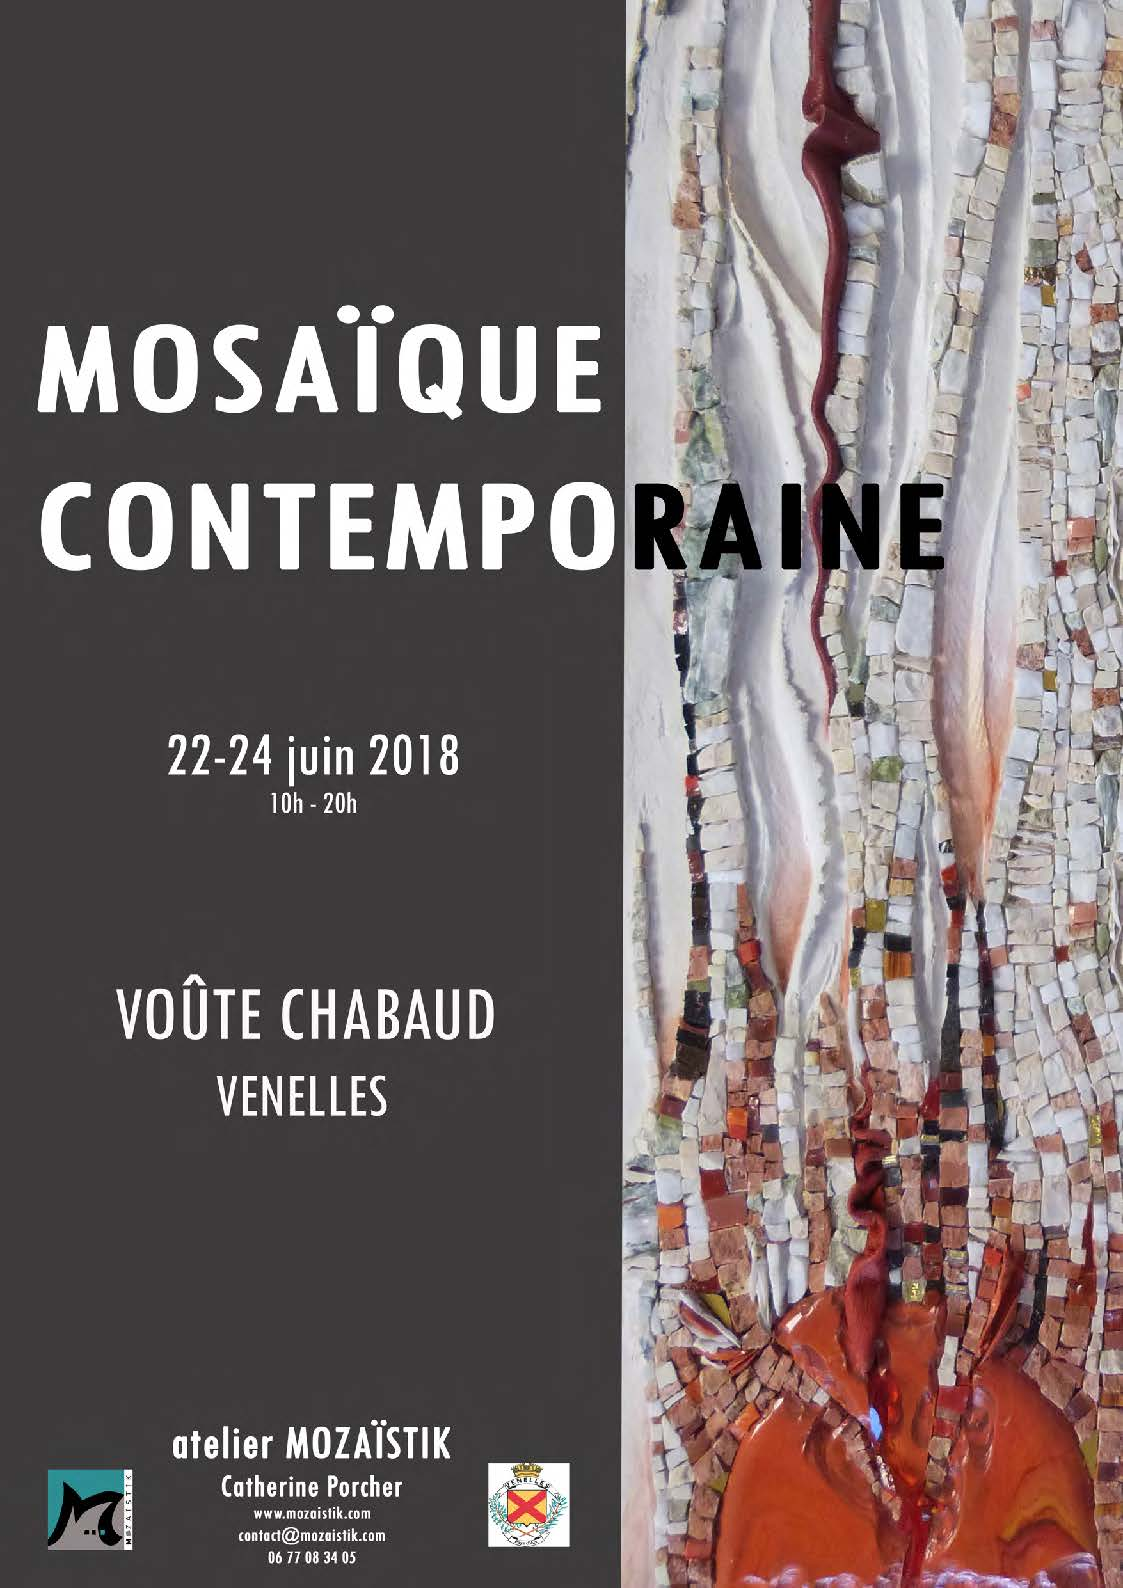 Affiche expo mosaïque contemporaine